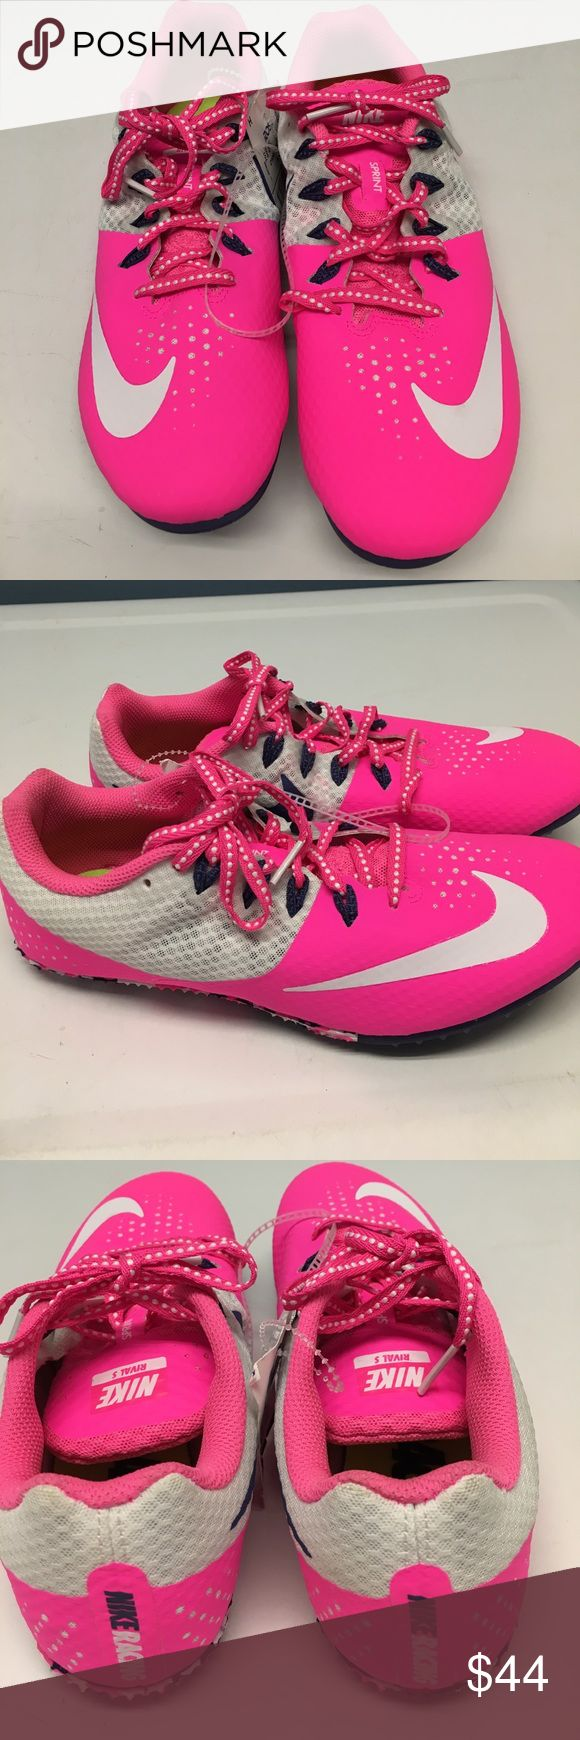 New Women's 8.5 Nike Racing Sprint Rival S Shoes New with tags Women's size 8.5 Nike Racing Rival S Sprint Shoes Cleats Spikes ~ pink, white & purple ~ UPC 00886548851973 ~ style #: 806558-615 ~ new with tags ~ no box or spikes Nike Shoes Sneakers